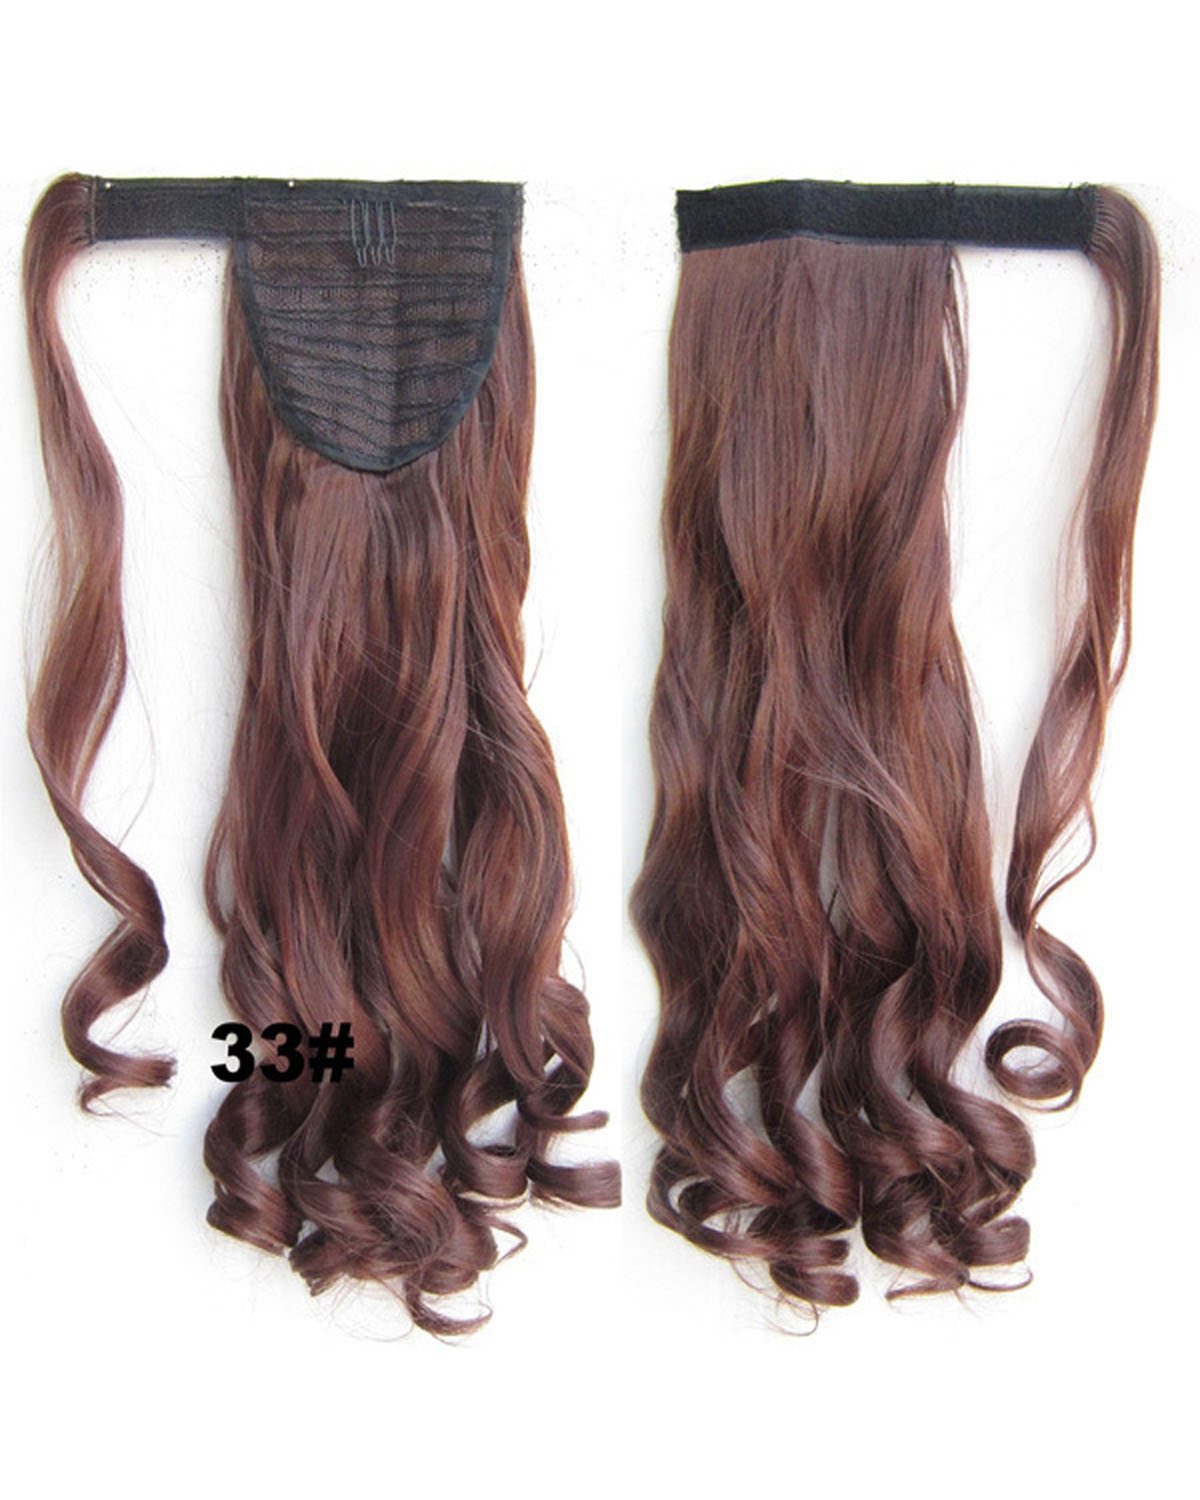 22 Inch Lady Thick Curly and Long Wrap Around Synthetic Hair Ponytail 33#